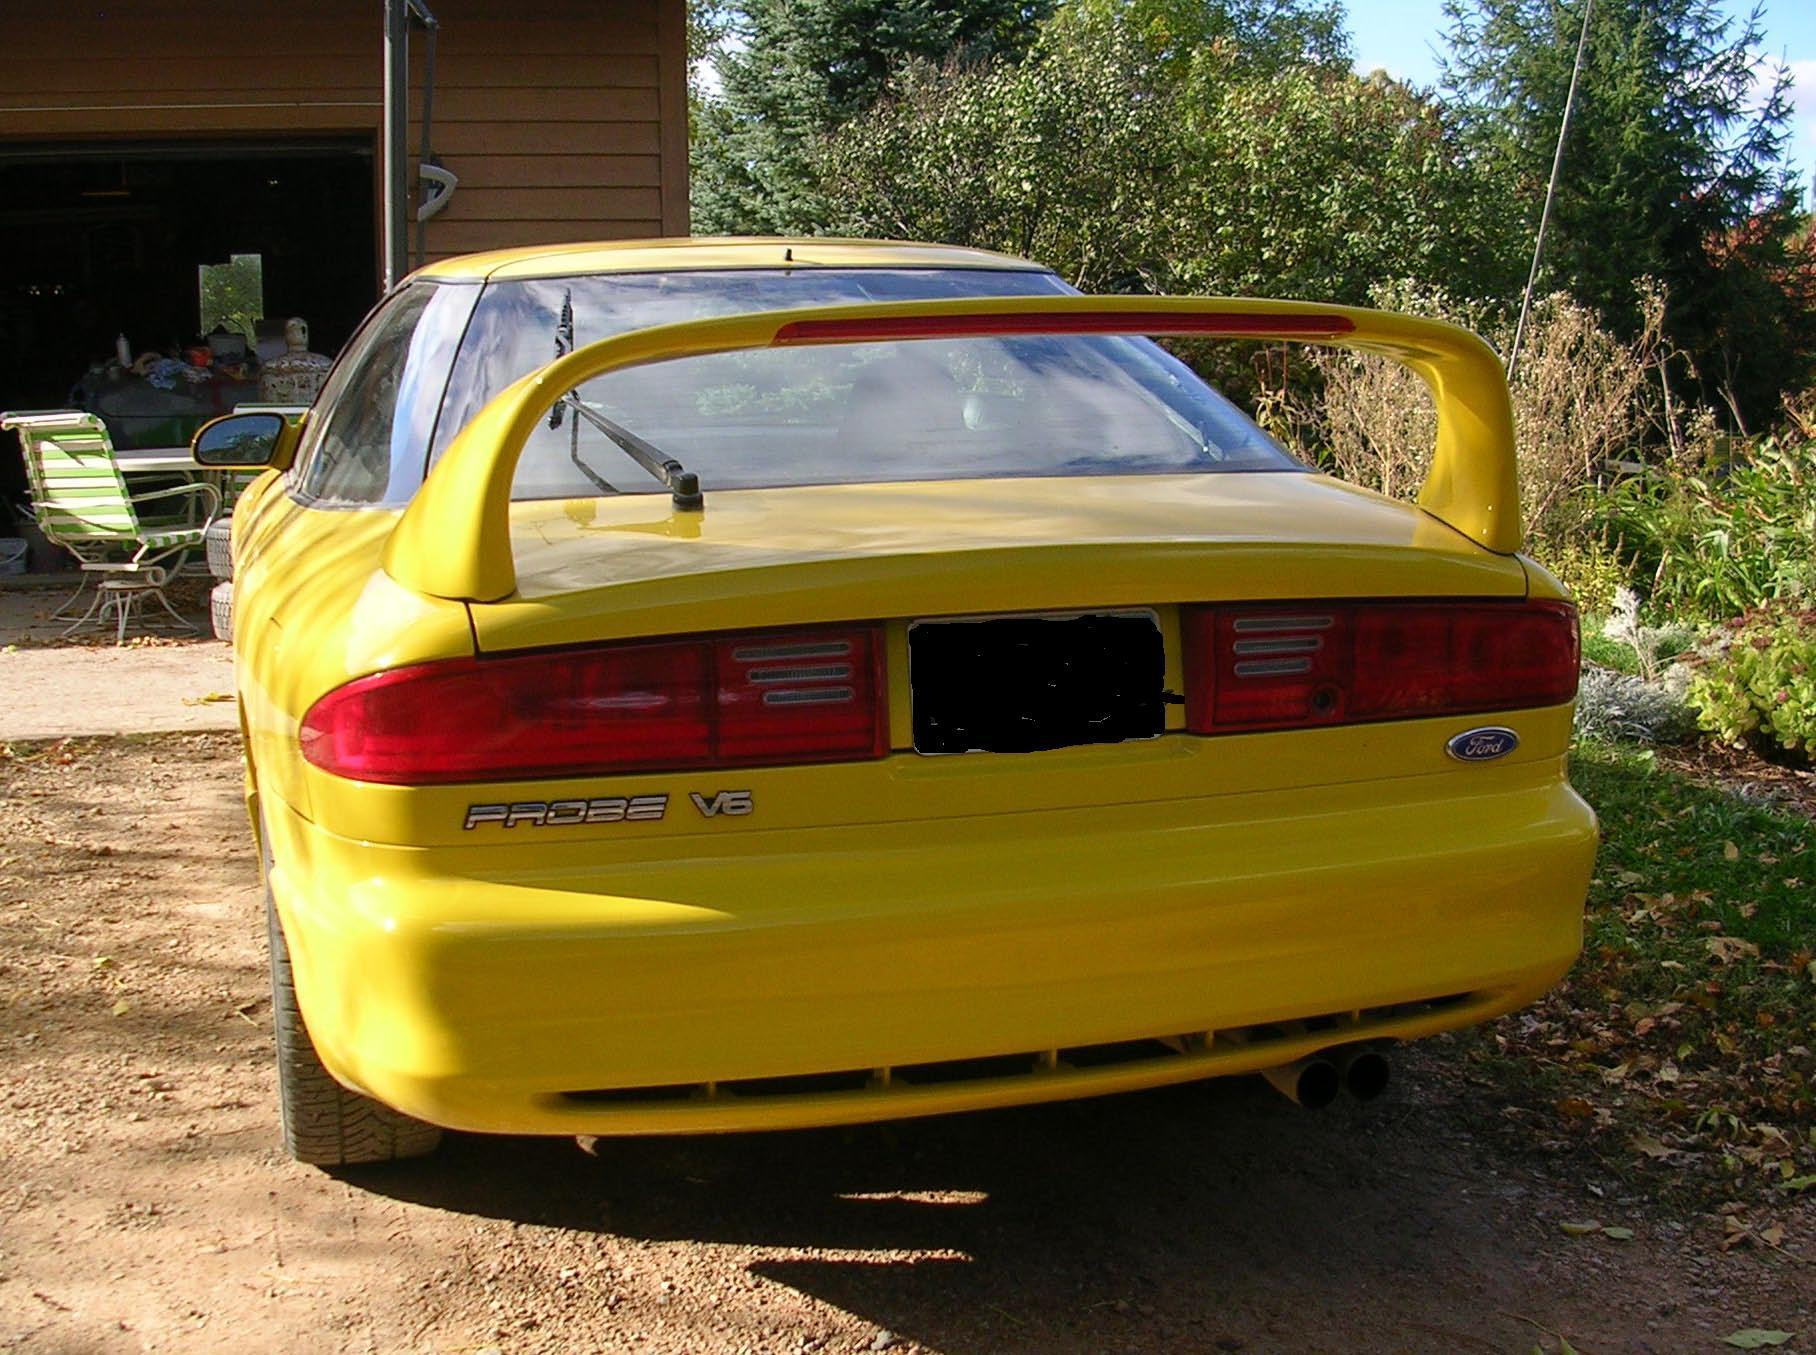 bartusek33's 1994 Ford Probe